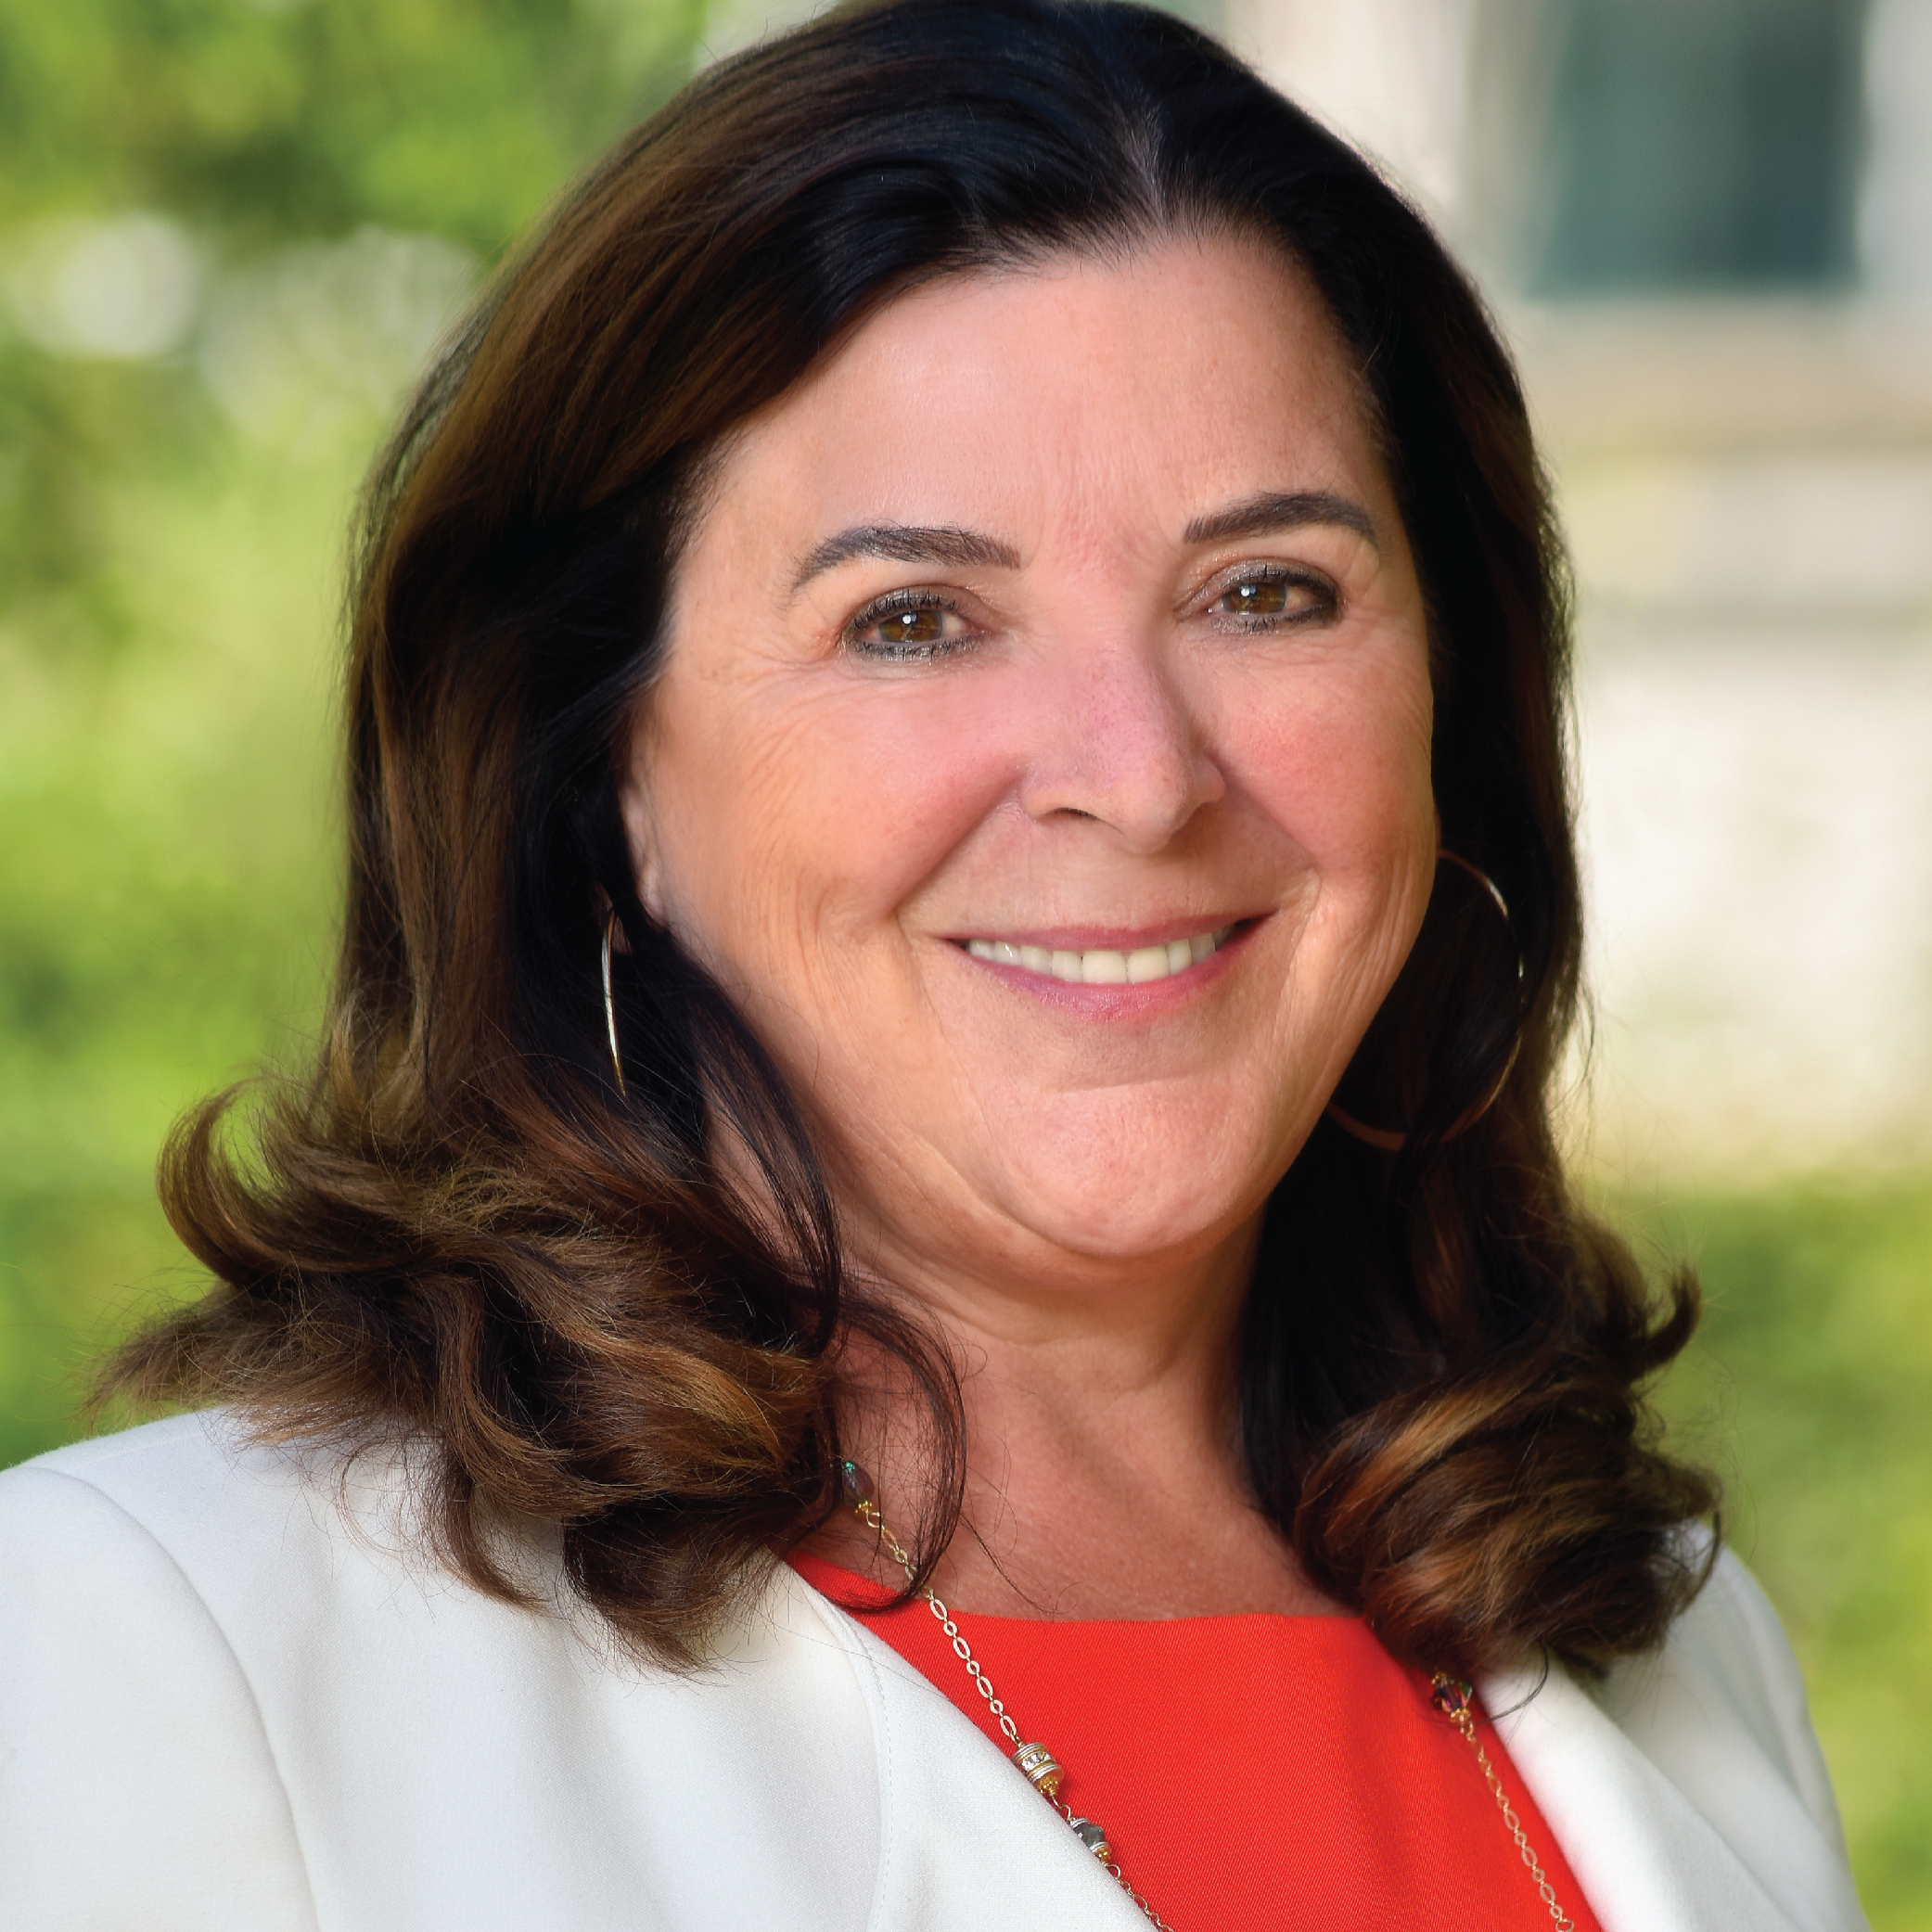 vianne_Timmons_Crop-01.png